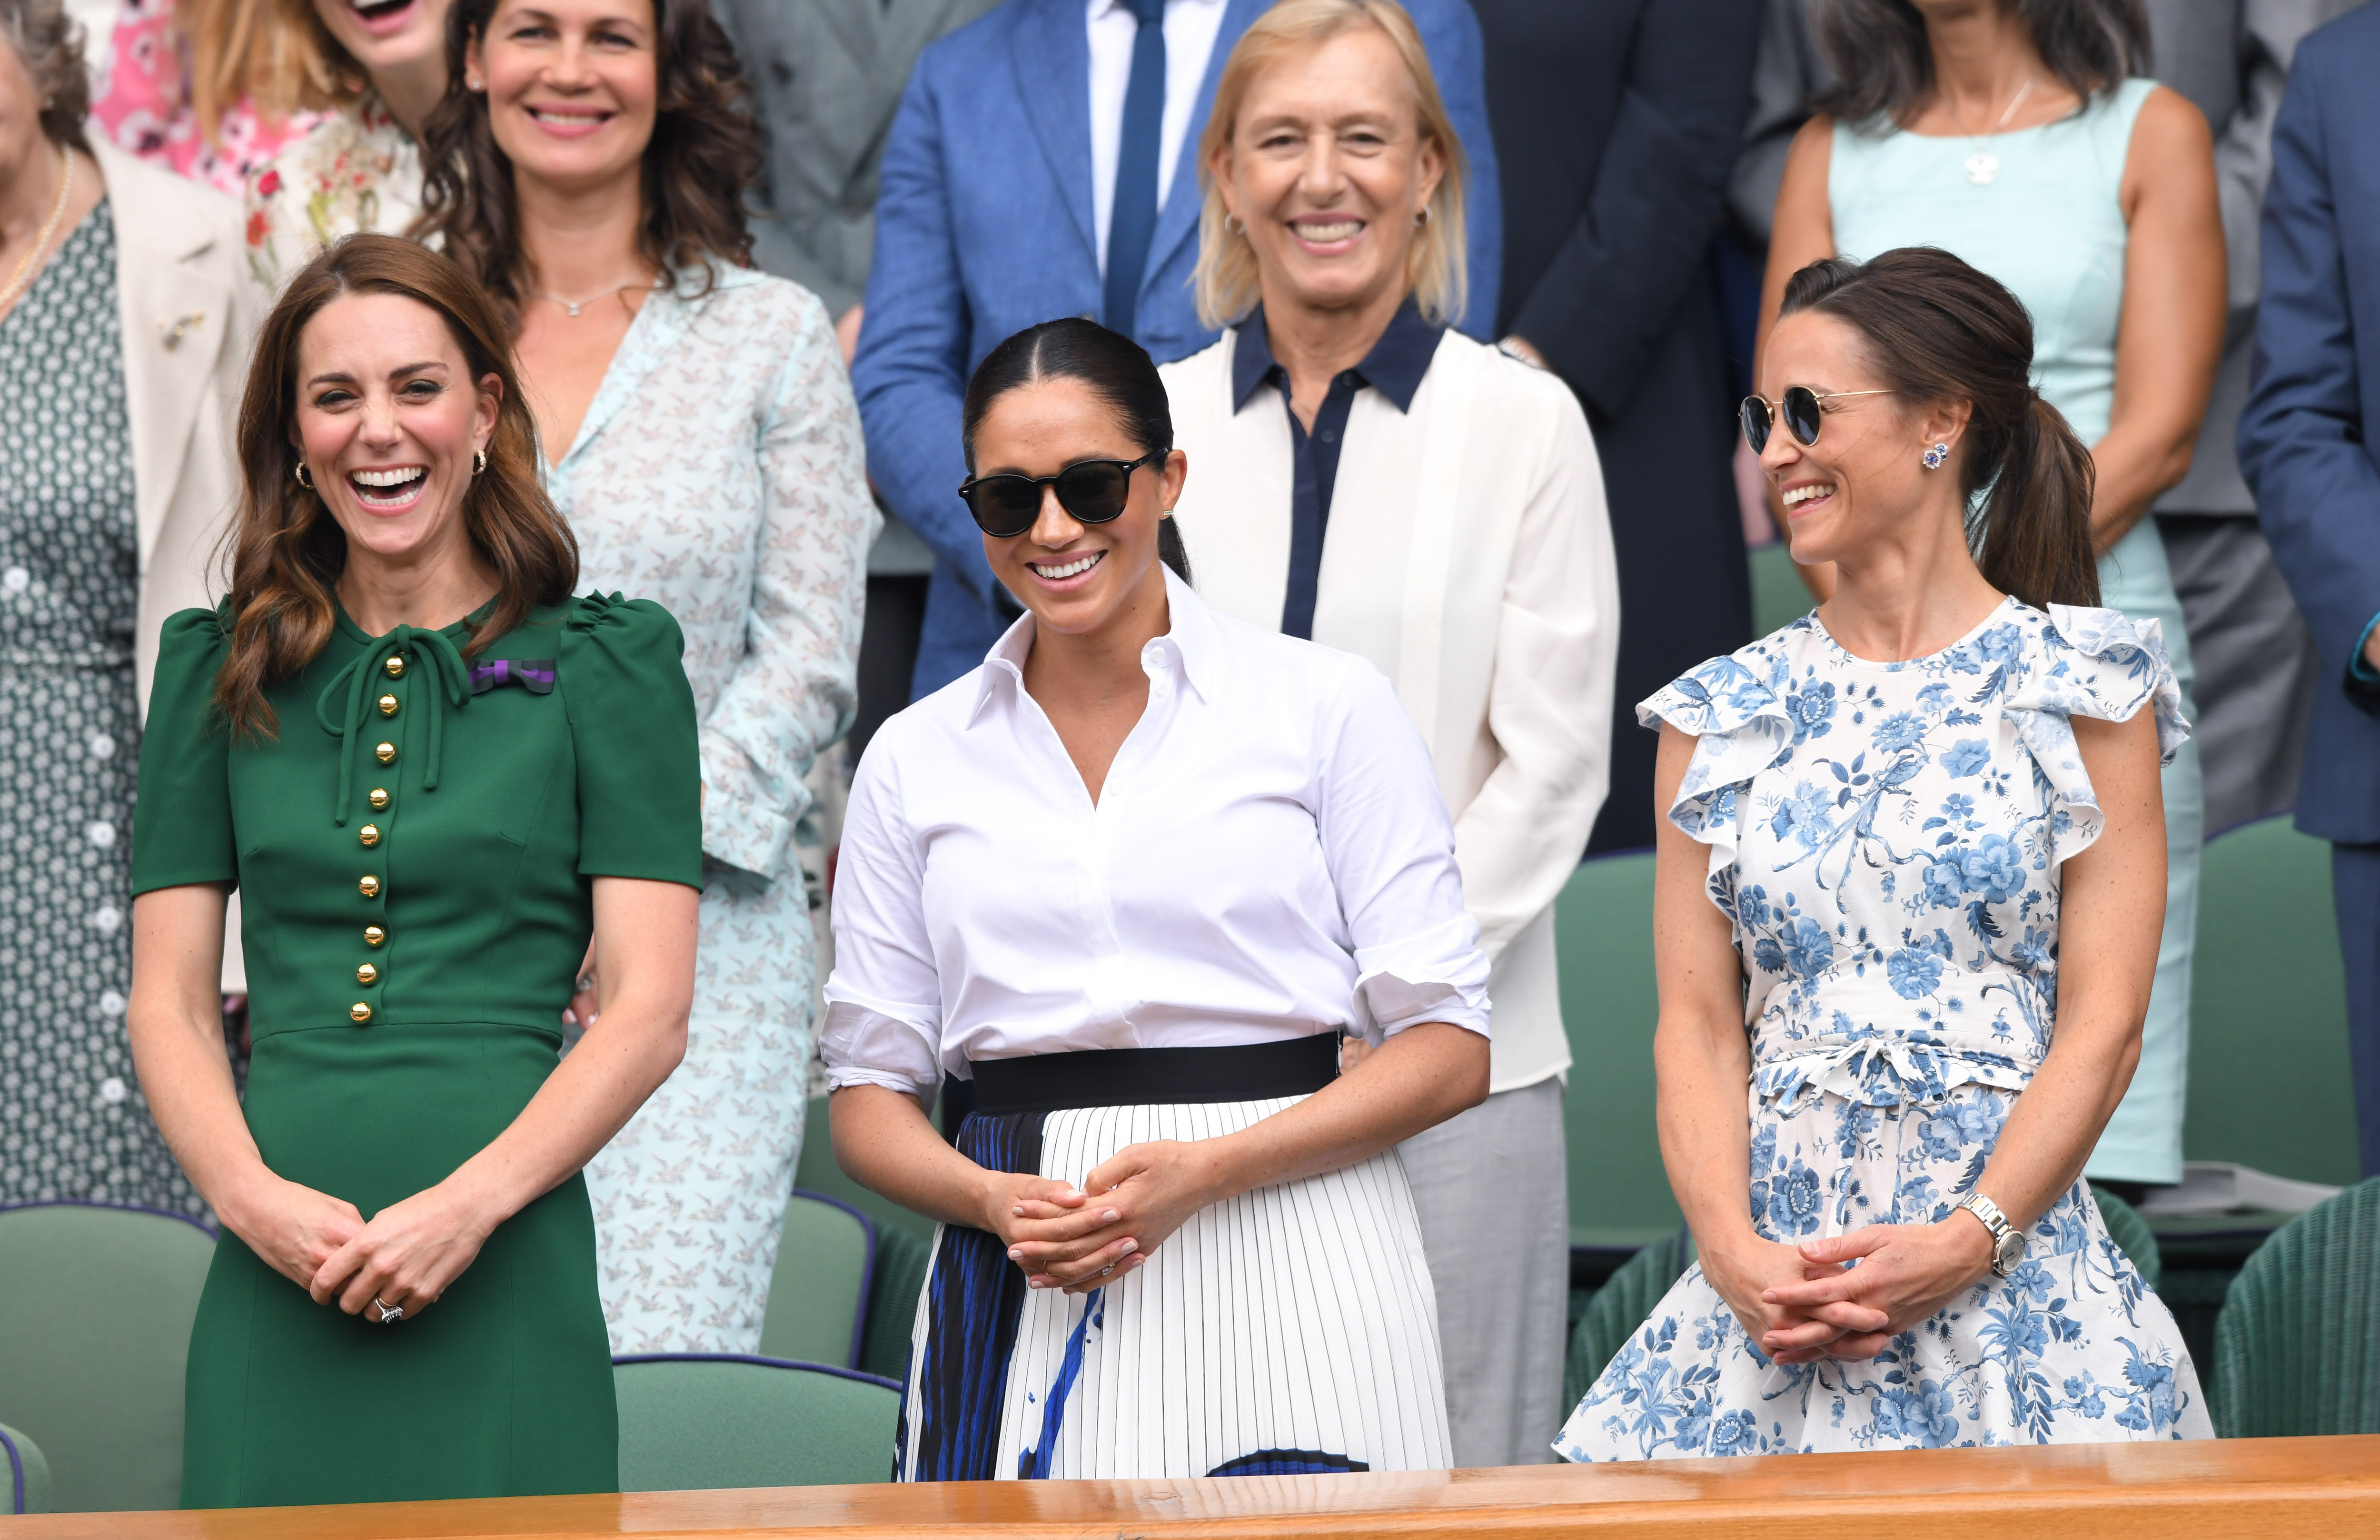 Duchess Kate, Duchess Meghan, and Pippa Middleton at Wimbledon on July 13, 2019   Photo: Getty Images